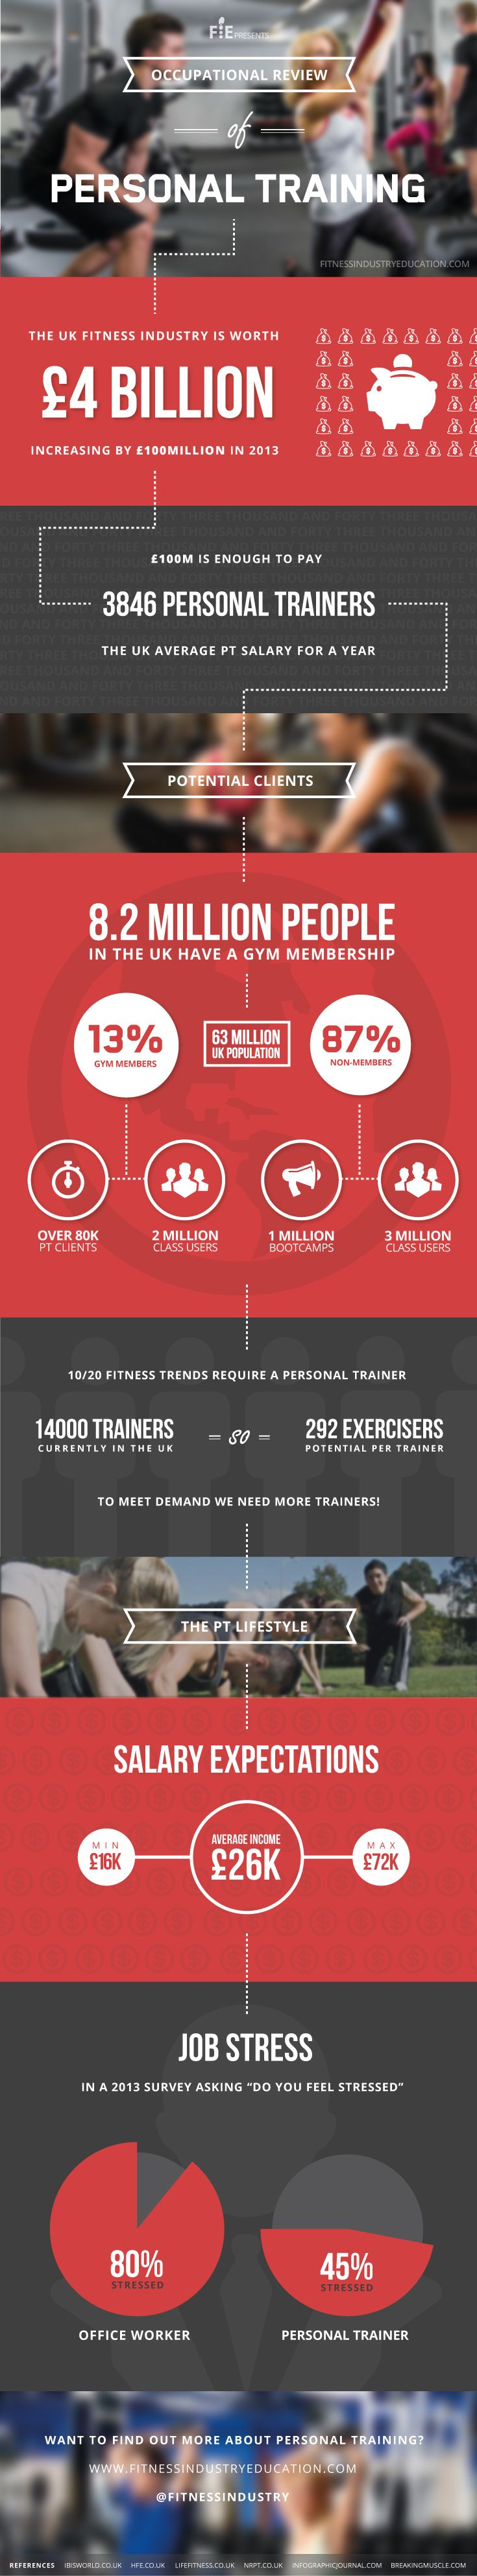 Best 25 personal training courses ideas on pinterest personal become a personal trainer certified and accredited personal training courses and fitness programmes to advance your career from trainfitness xflitez Images